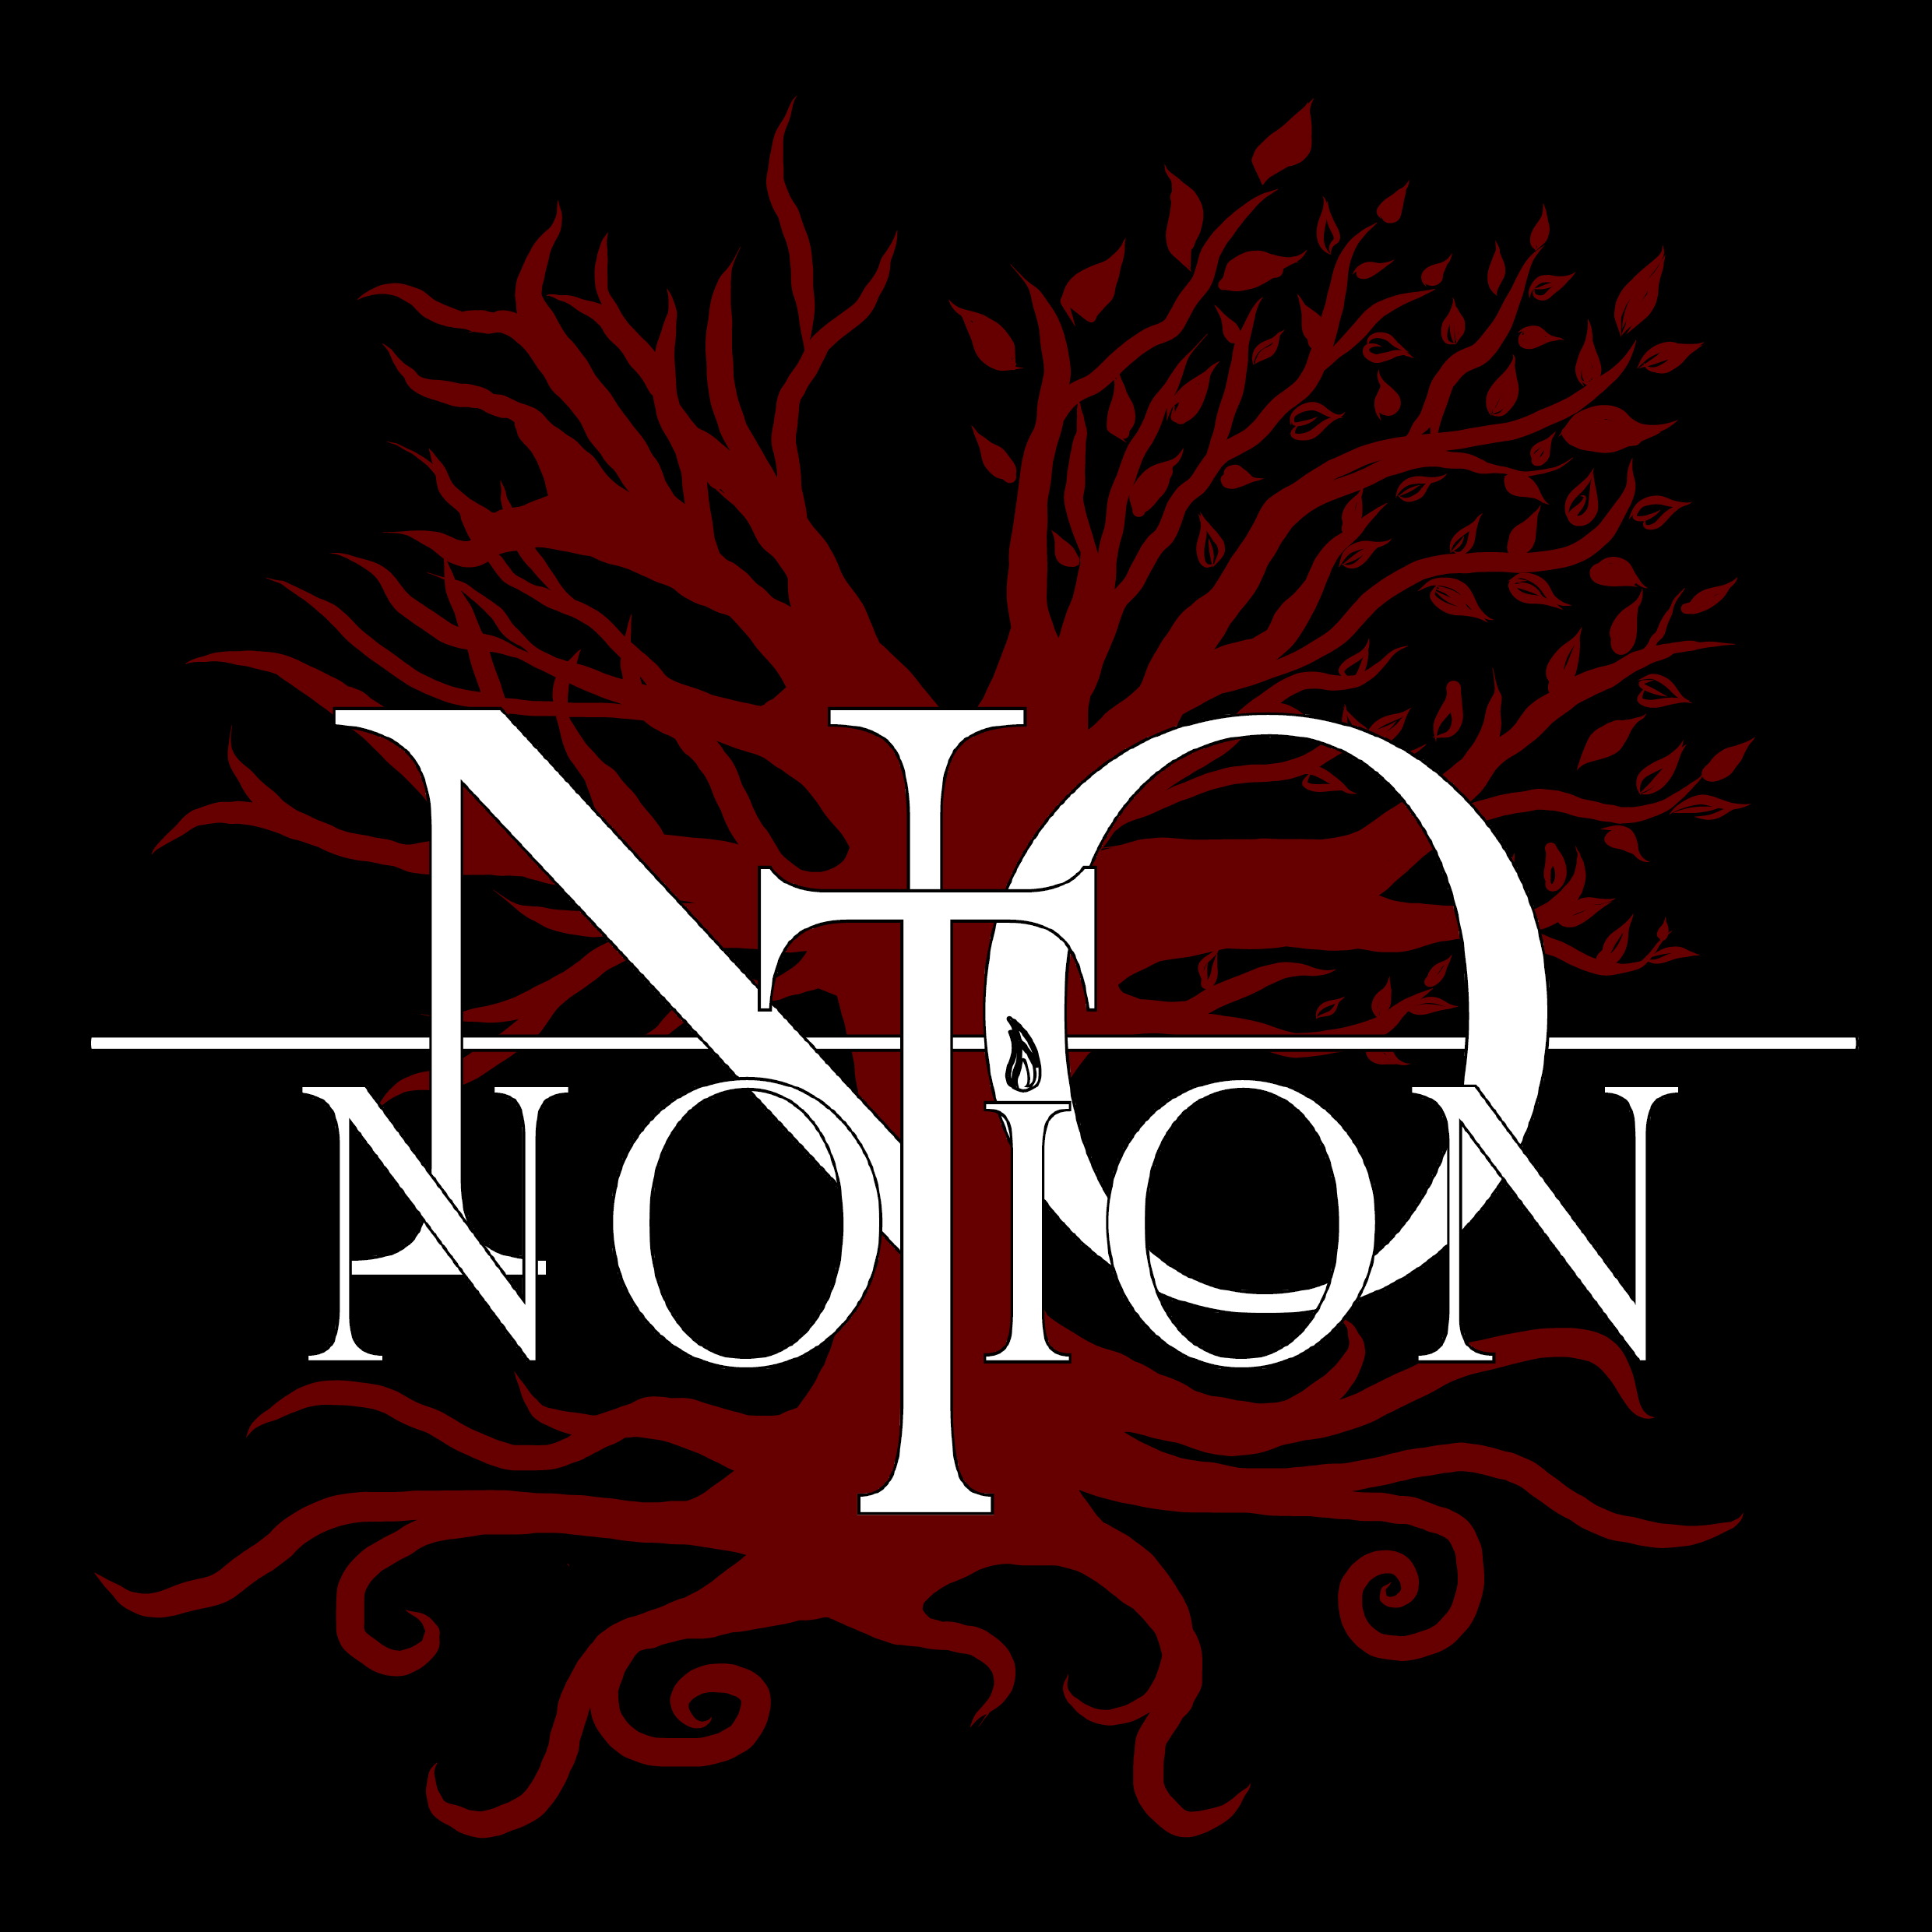 No Notion|no-notion|The band's sound has a strong connection to classic Heavy Metal and Thrash.